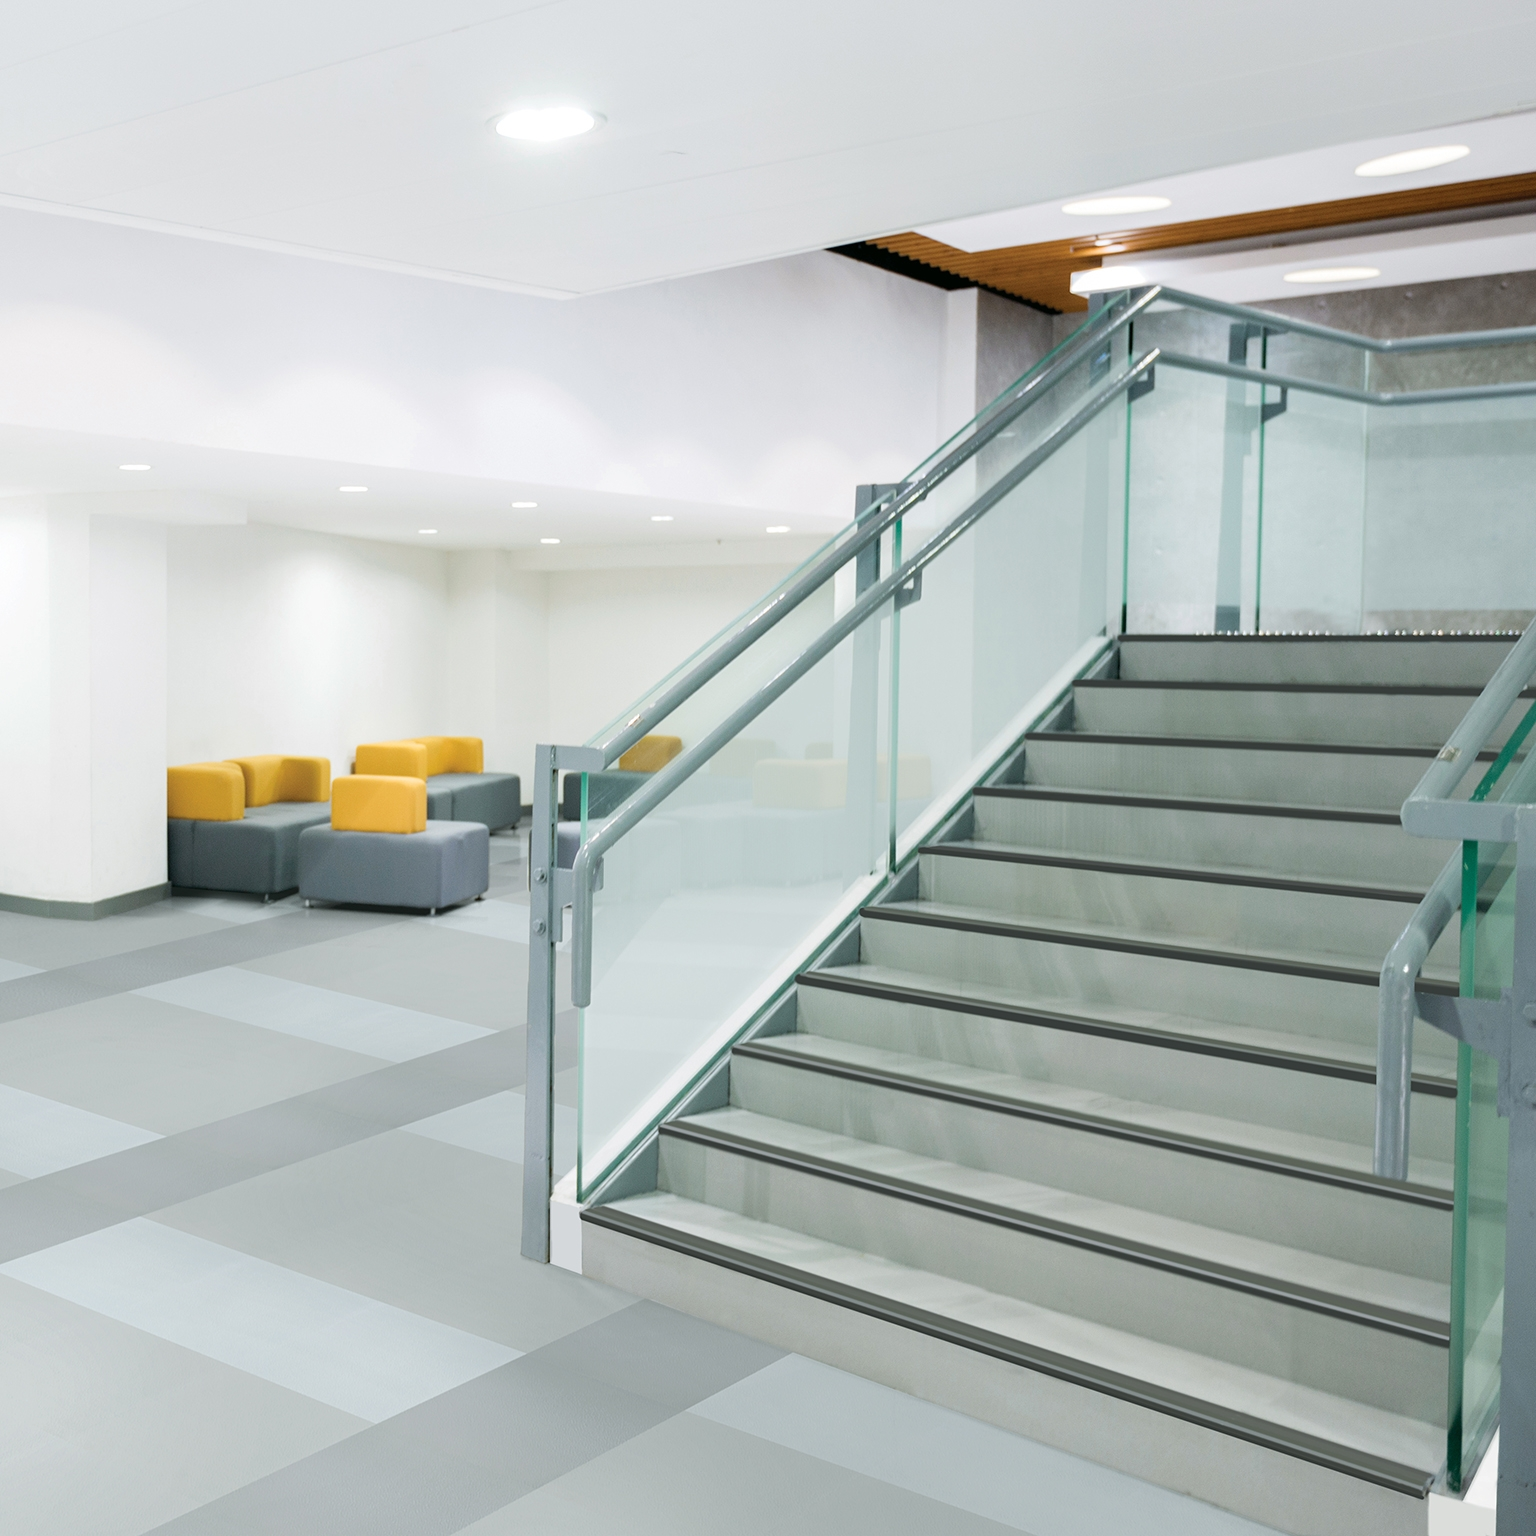 Stair Nosings Stair Systems Accessories Mannington Commercial   Rubber Stair Nosing For Carpet   Metal Stair   Aluminium Stair   Wood   Anti Slip   Non Slip